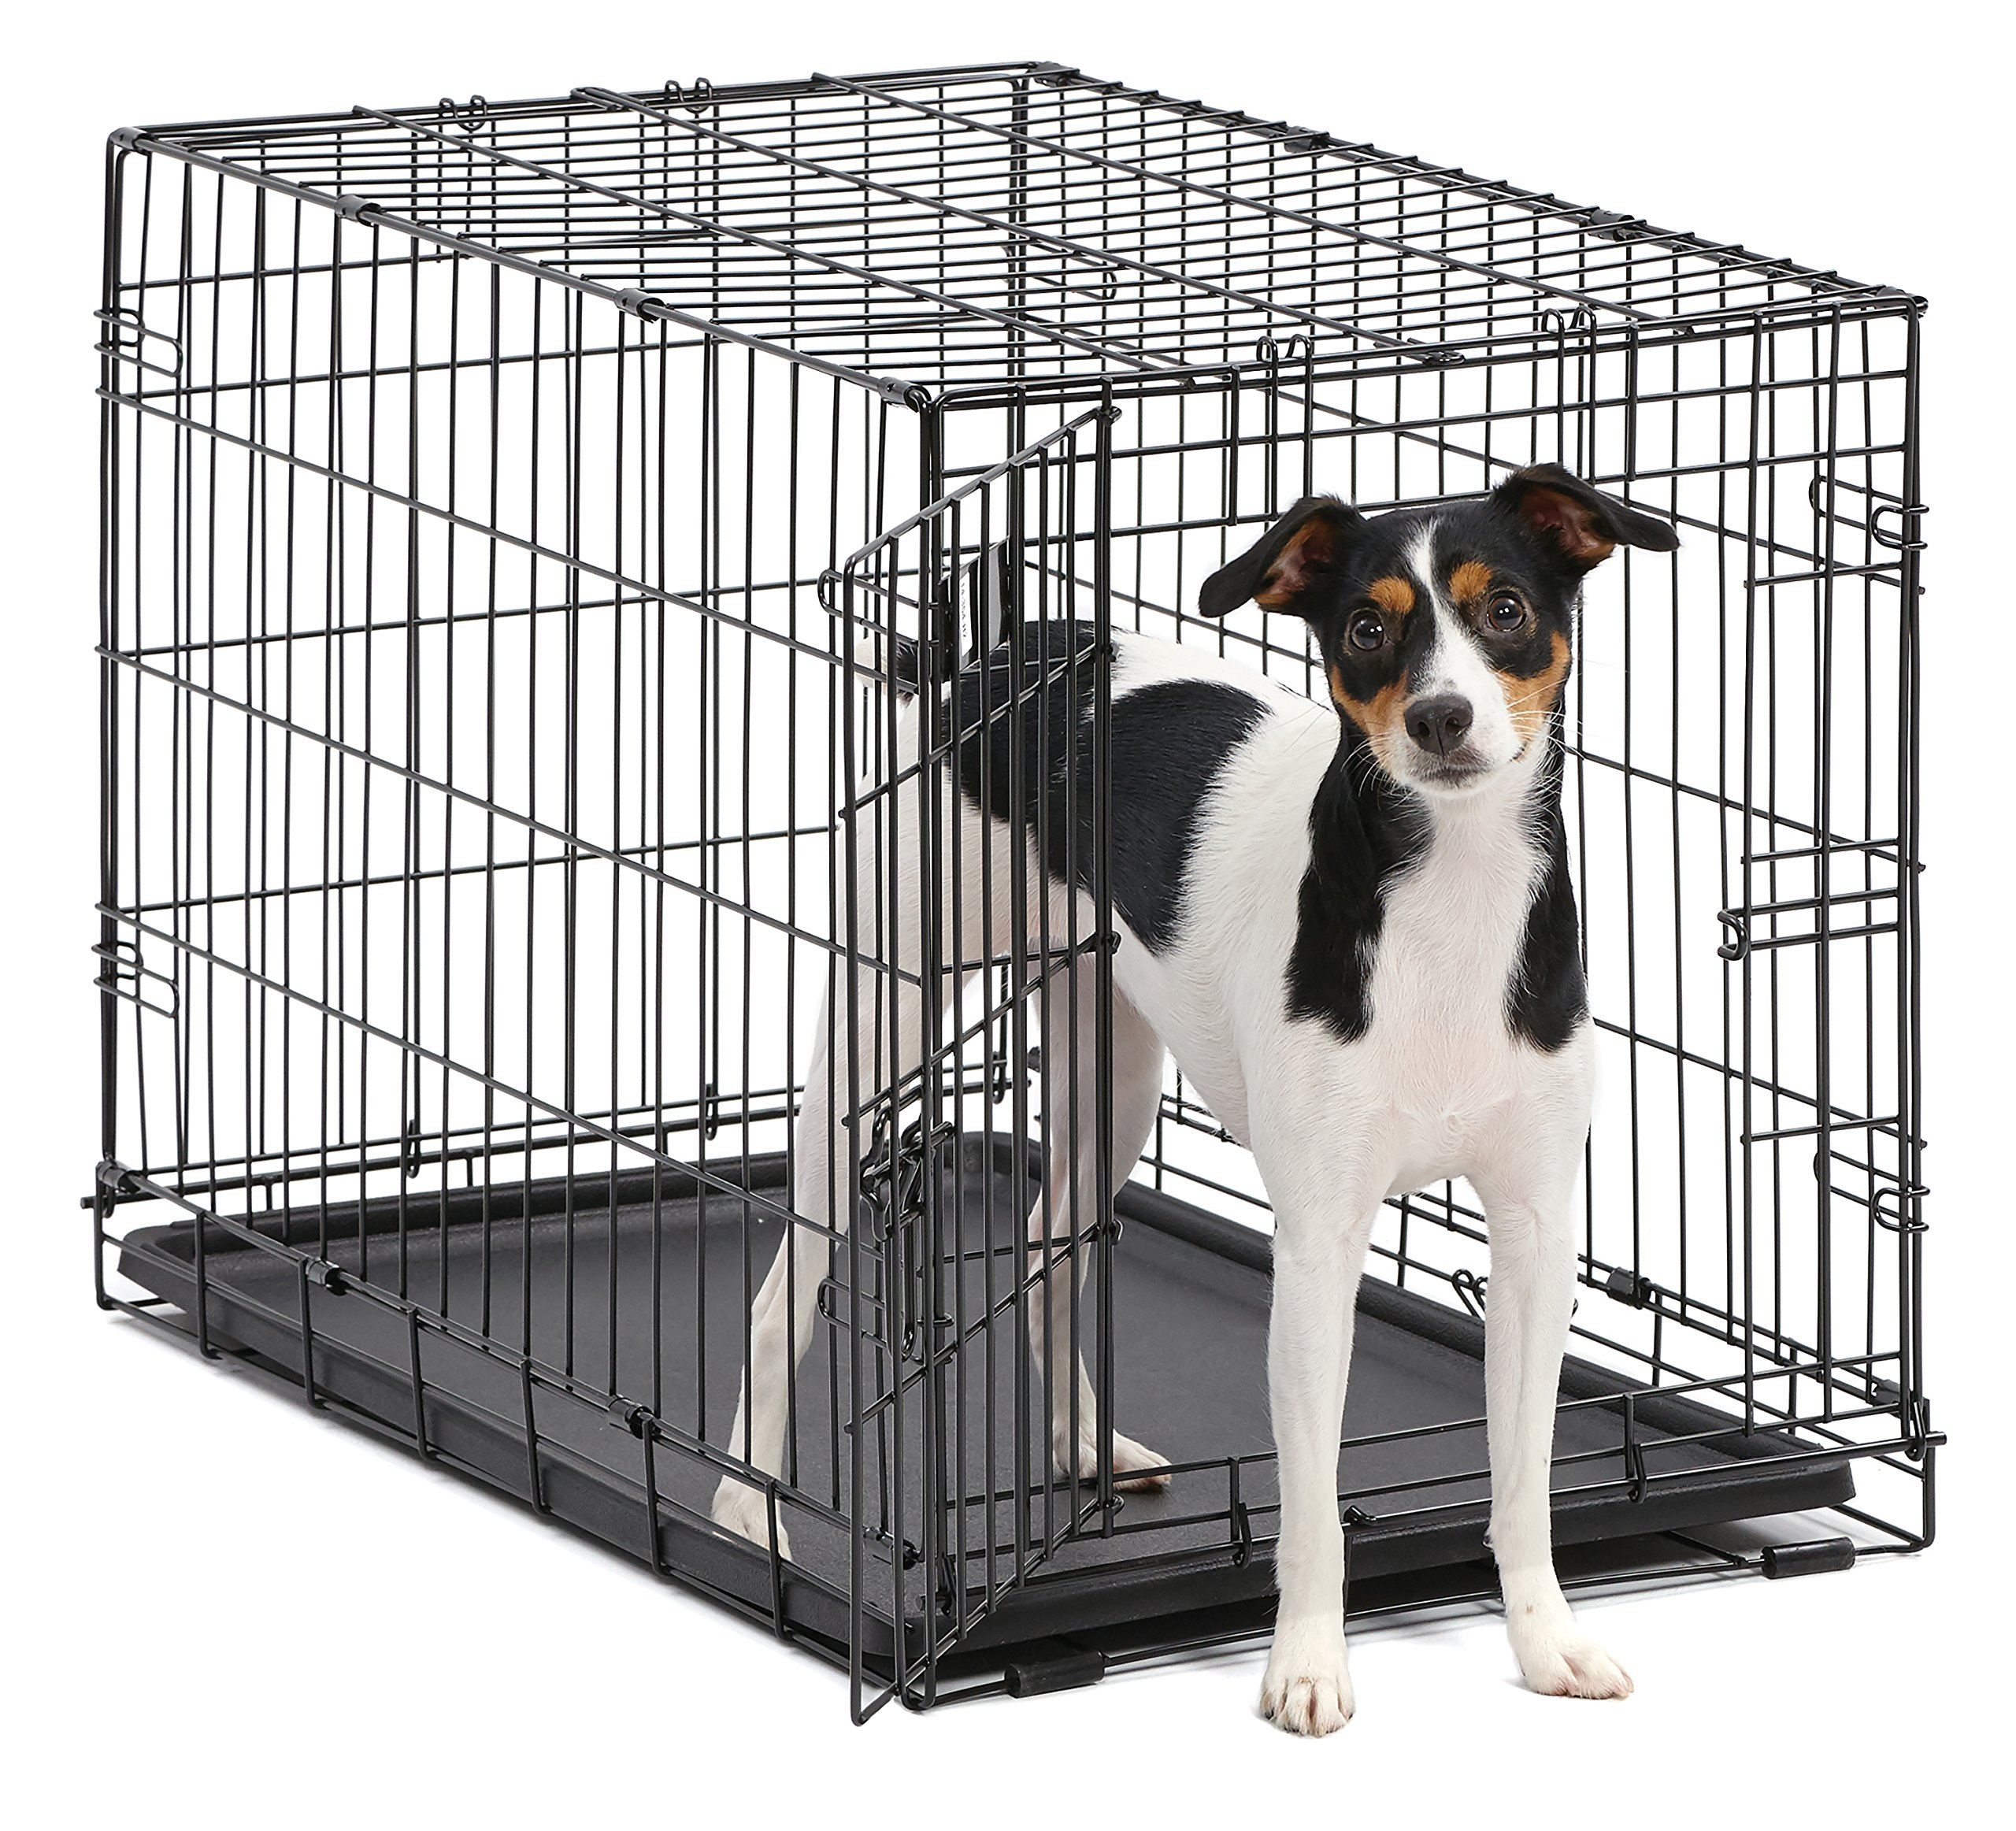 Best rated in dog supplies helpful customer reviews amazon dog crate midwest icrate 30 folding metal dog crate w divider panel solutioingenieria Images